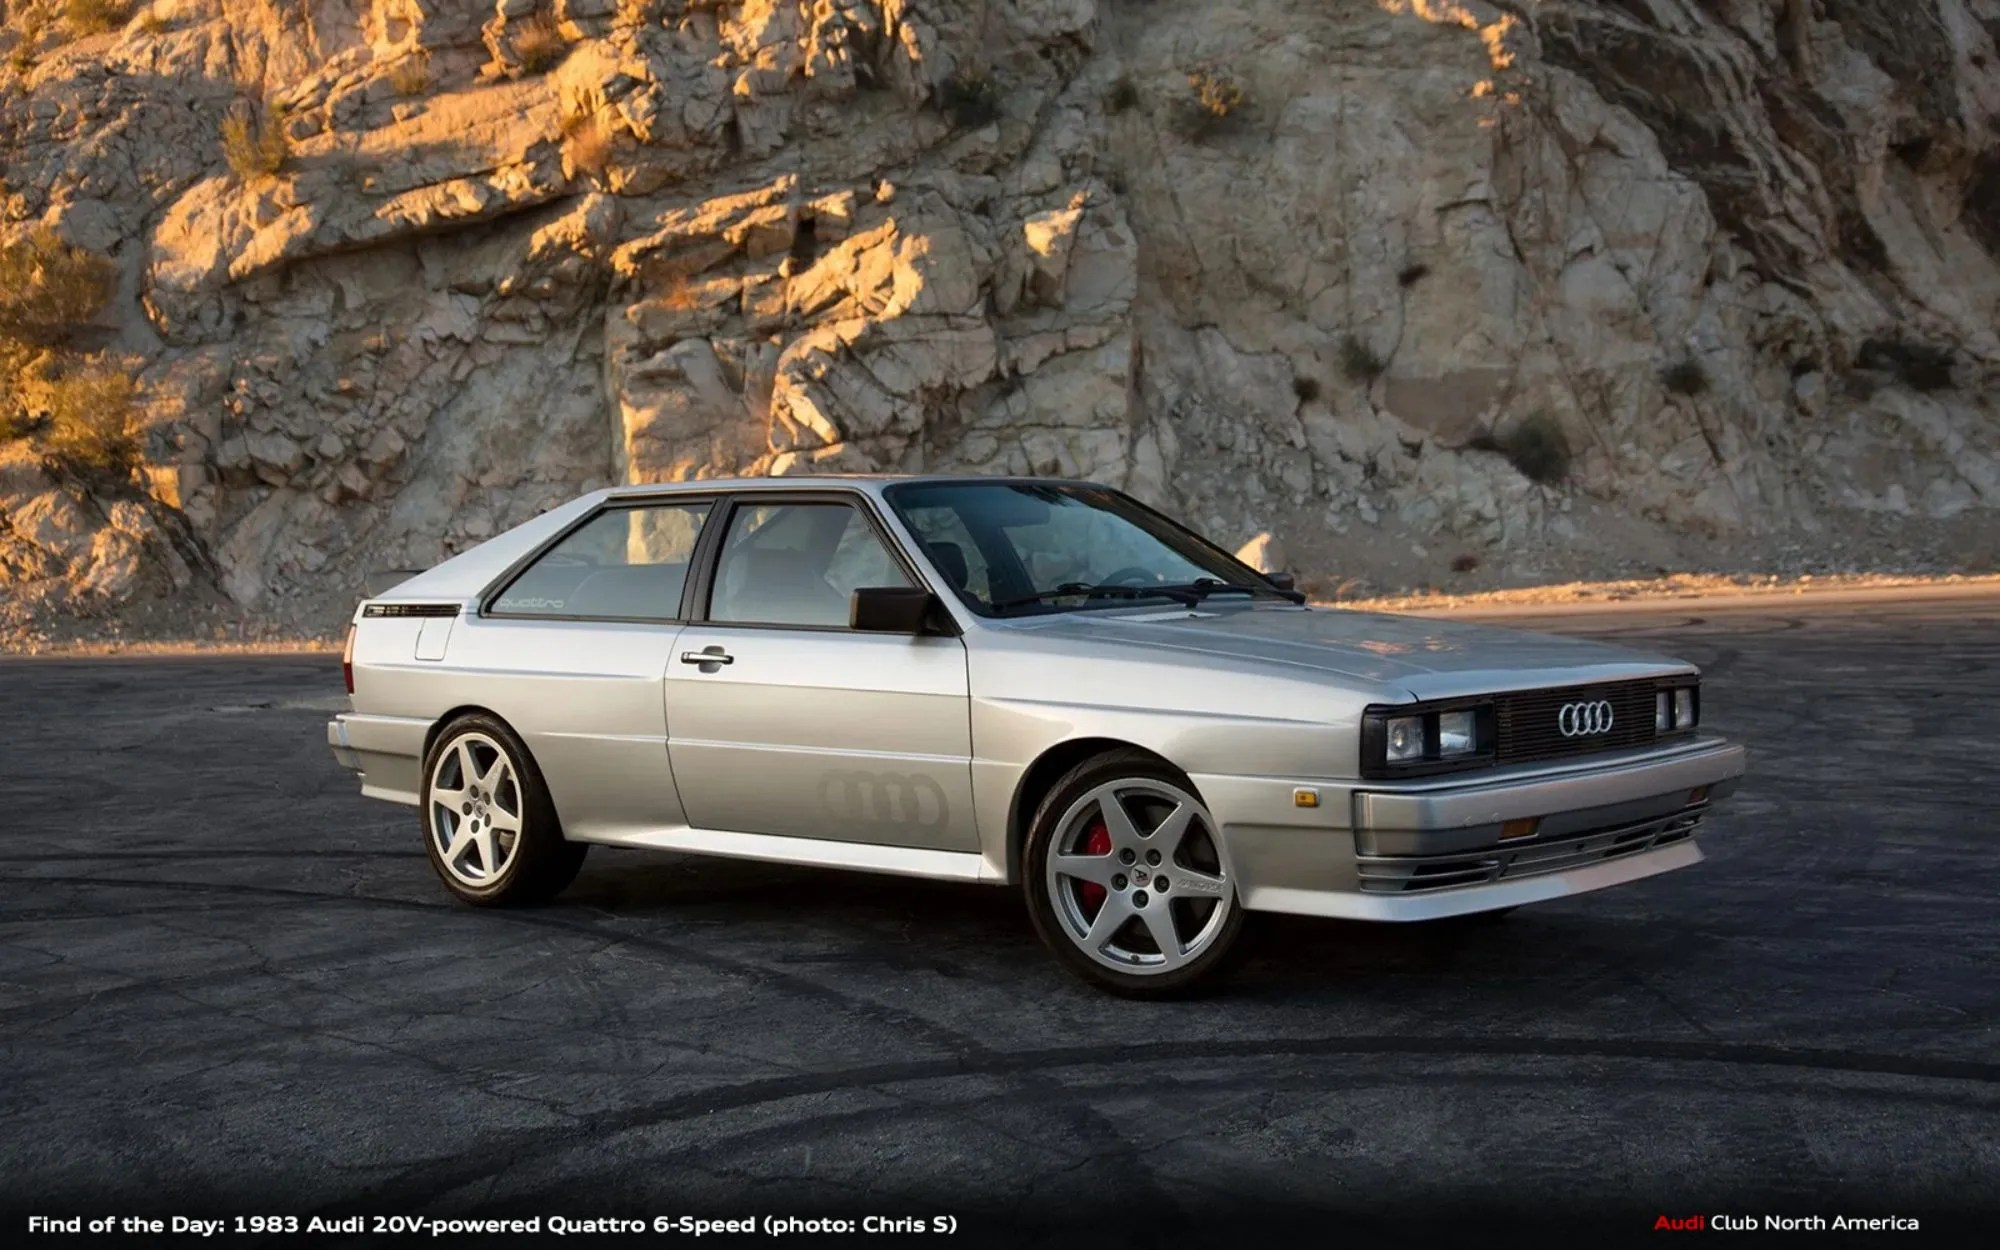 Find of the Day: 1983 Audi 20V-Powered Quattro 6-Speed